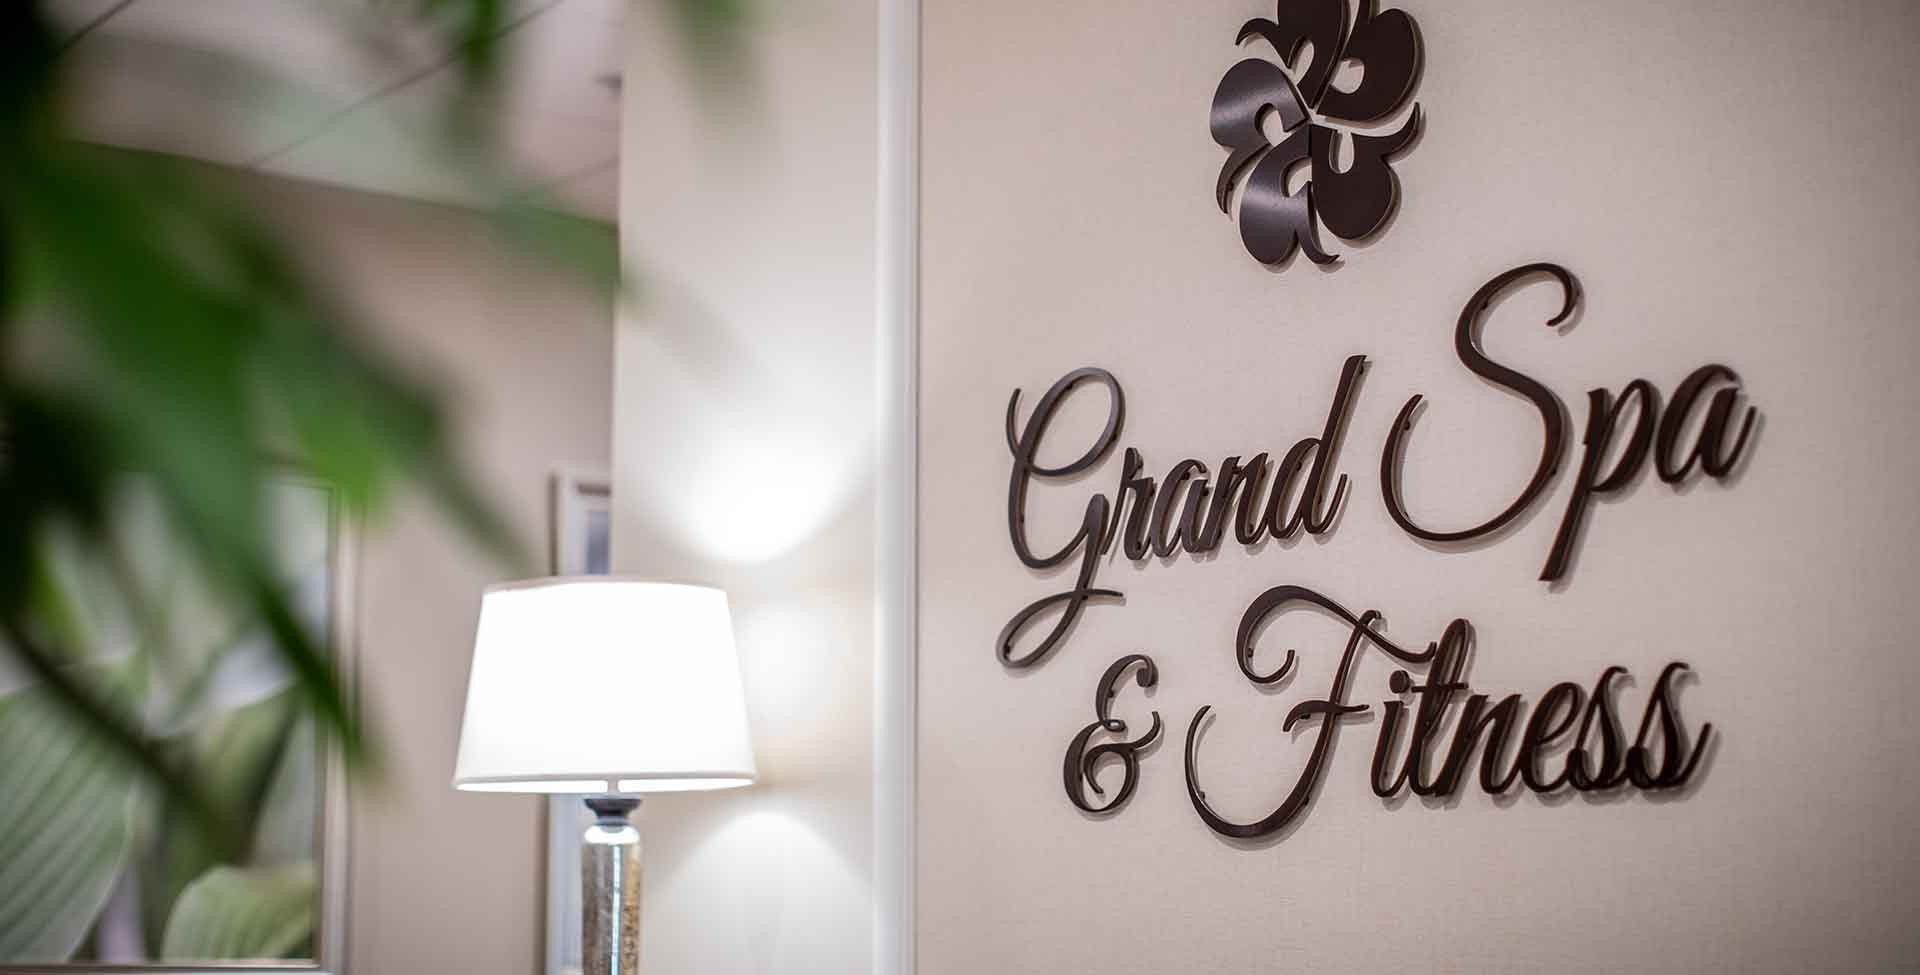 Grand Spa and Fitness center signage